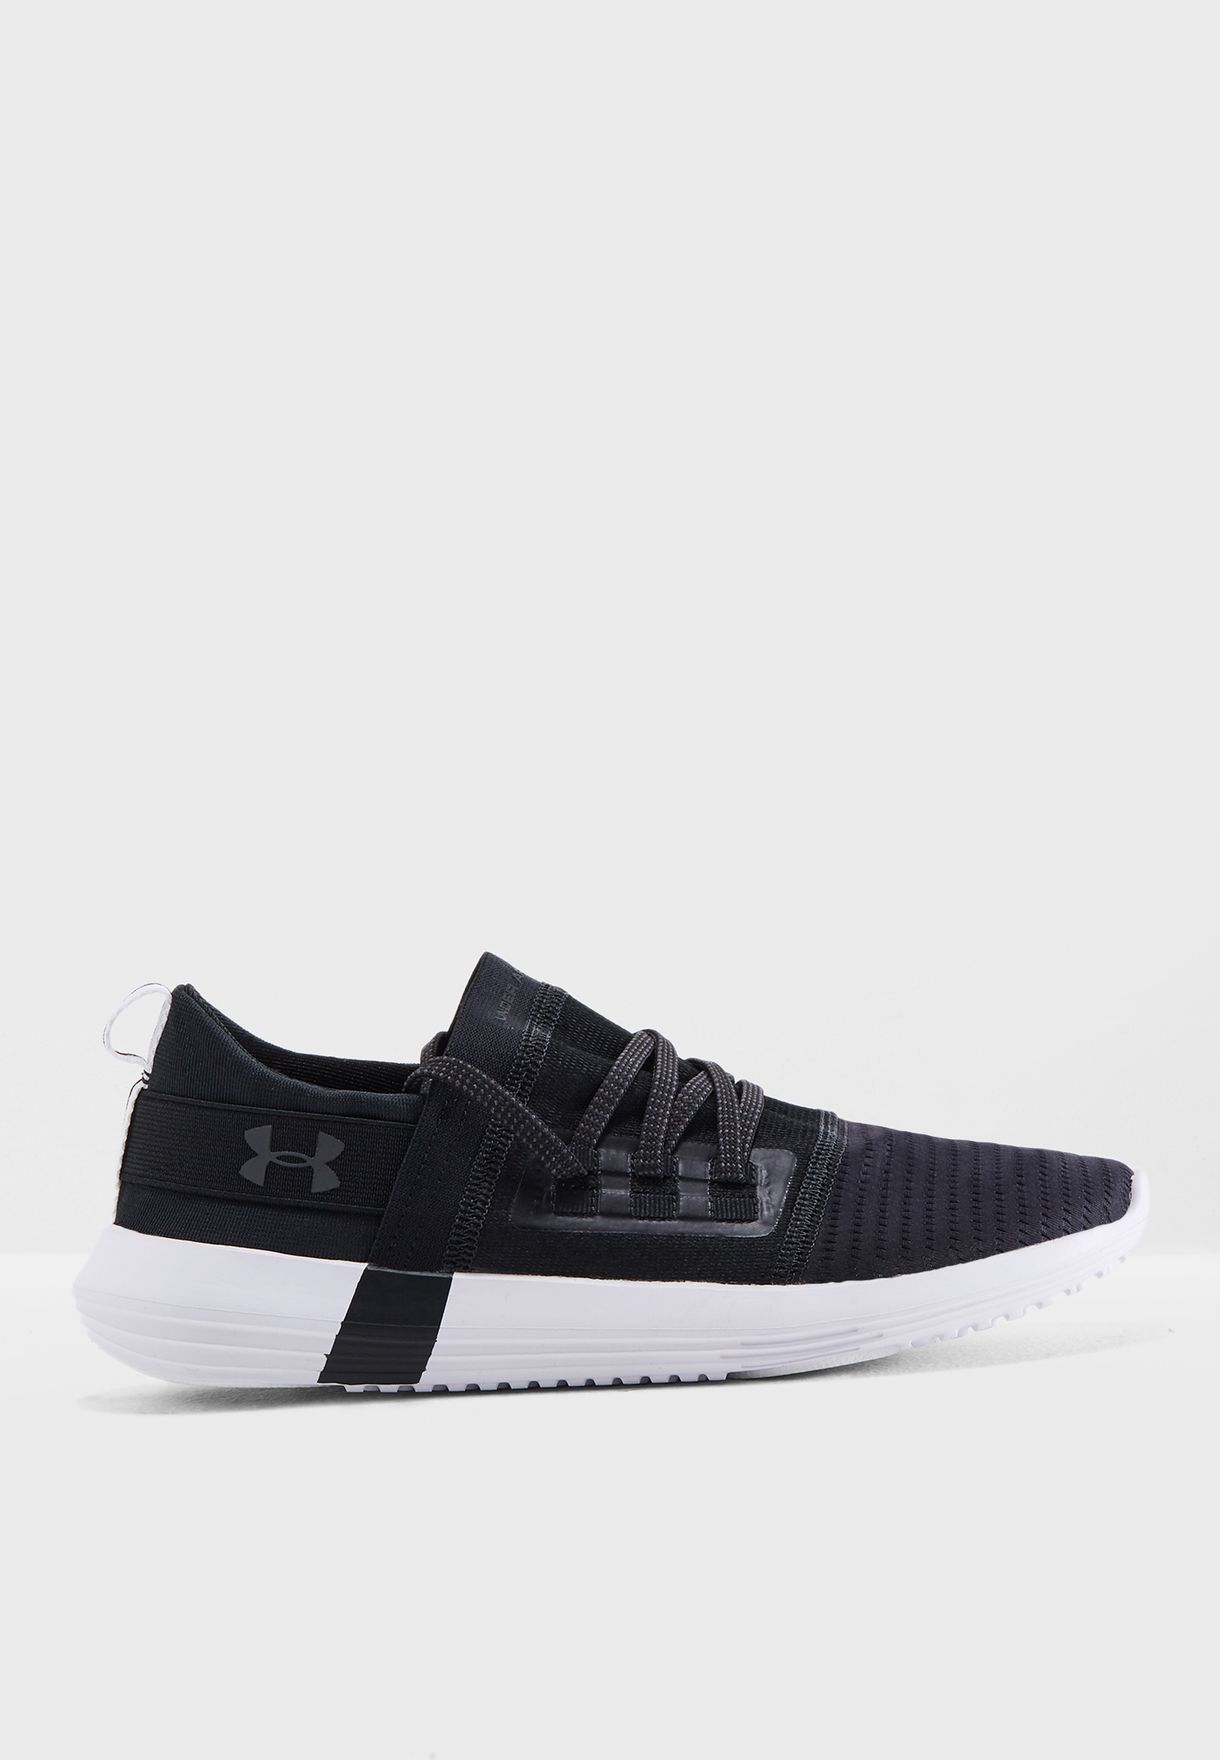 Buy Under Armour black Adapt for Women